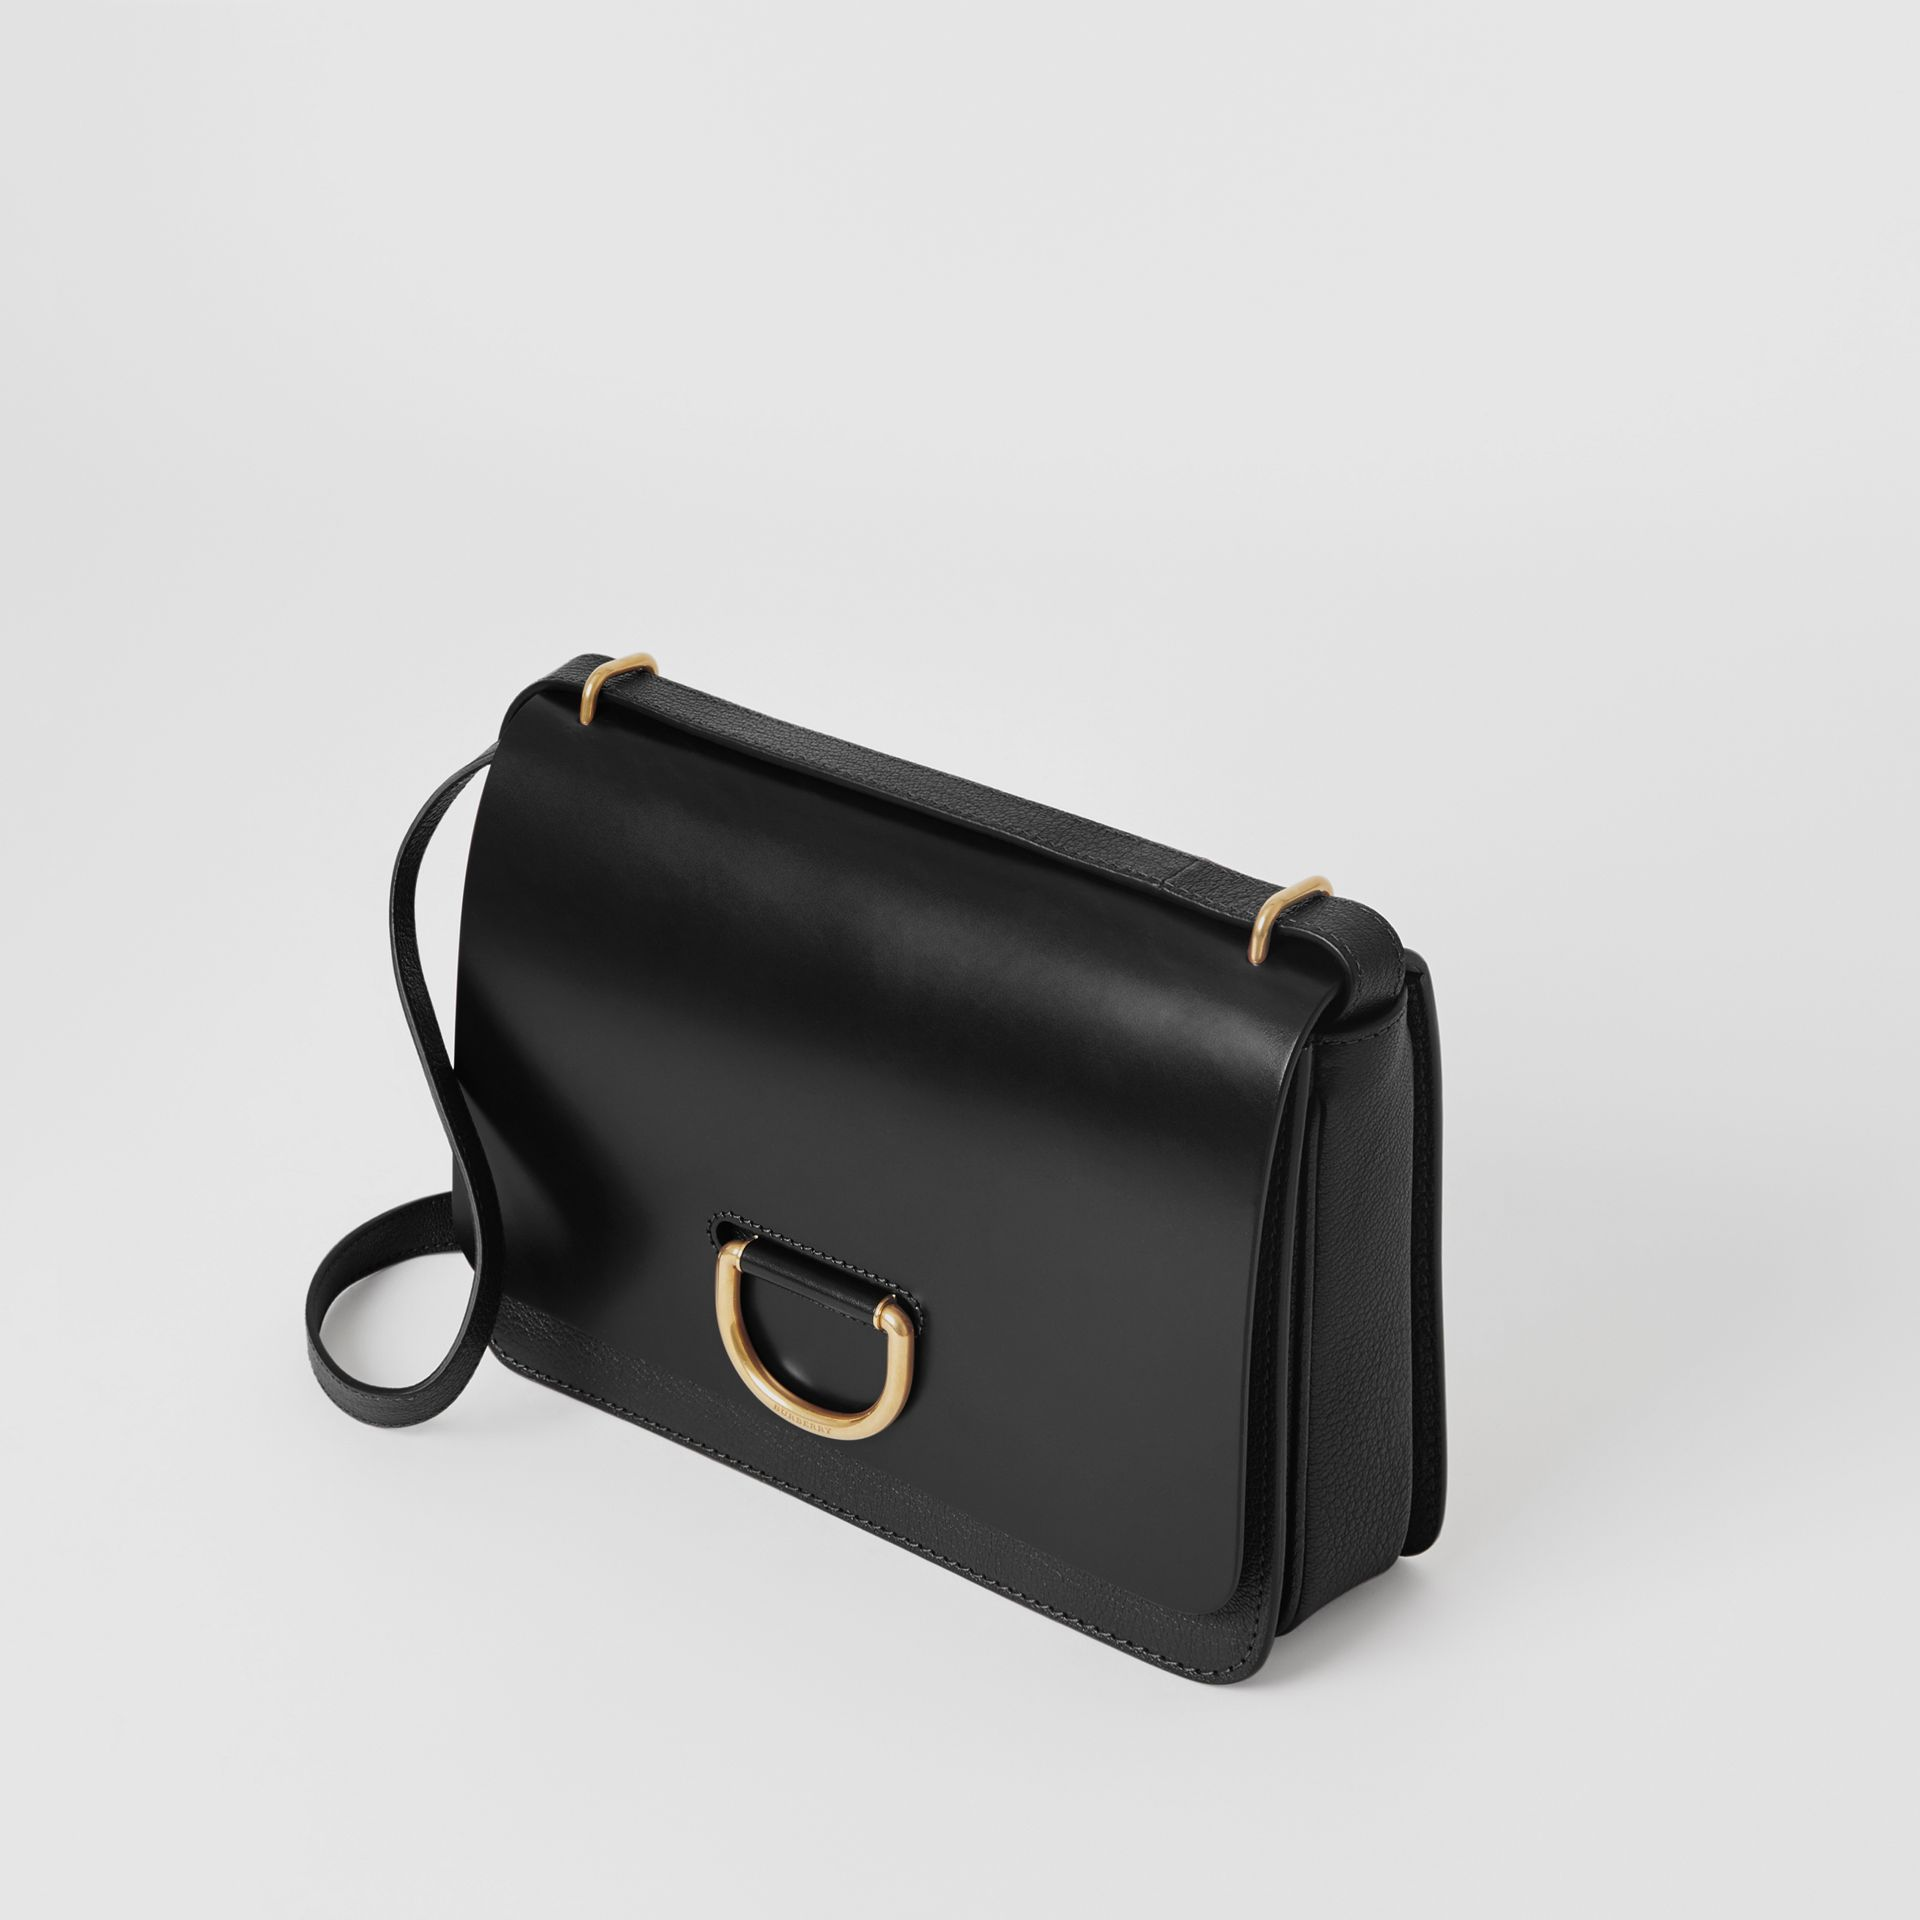 Sac The D-ring moyen en cuir (Noir) - Femme | Burberry - photo de la galerie 4